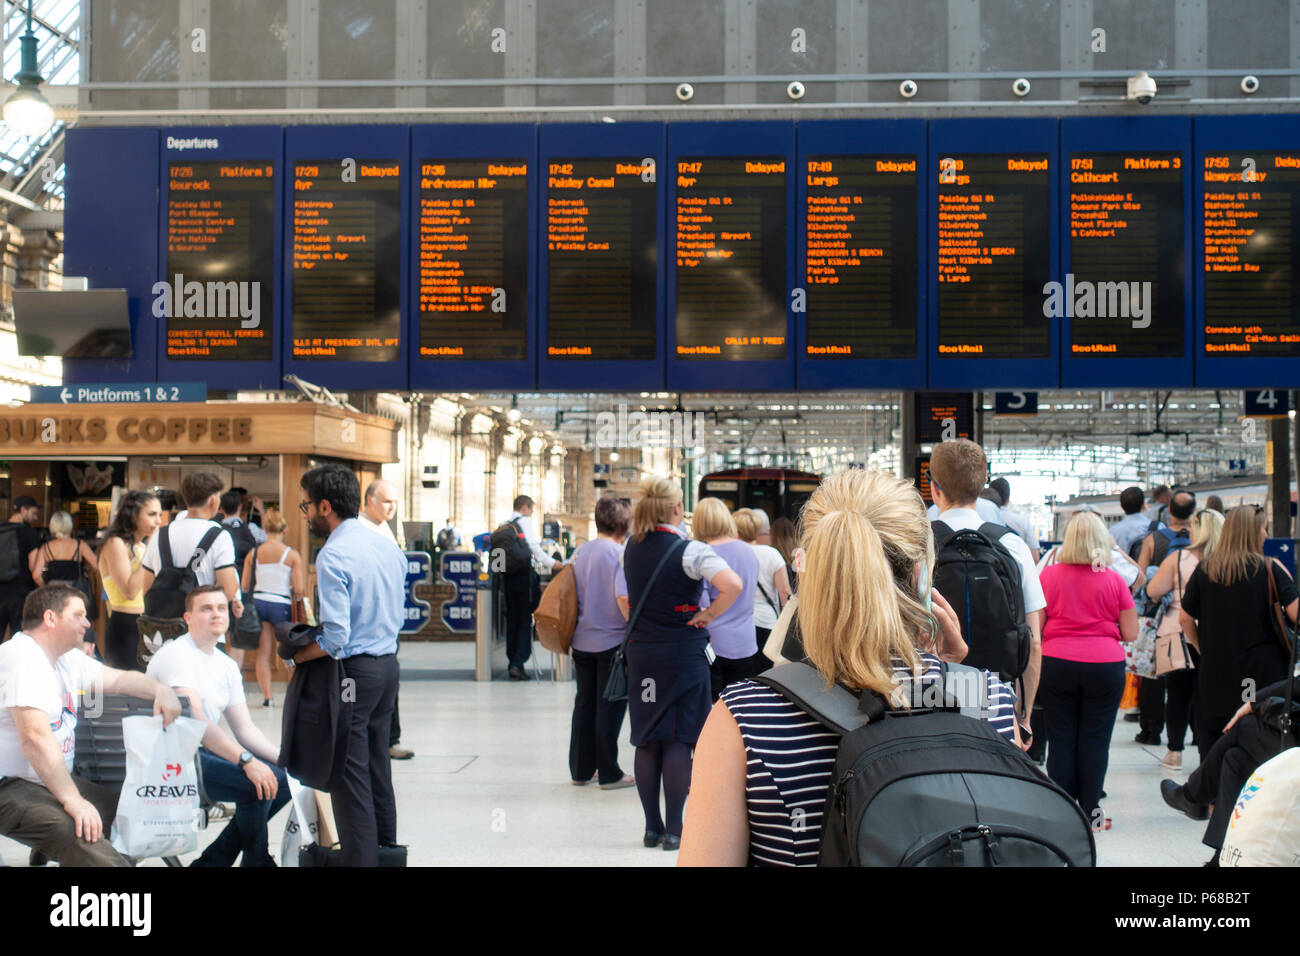 Glasgow, Scotland, UK. 28th June 2018. Passengers on the concourse of Glasgow Central Station await news of departures, after most early evening rush hour trains have been delayed or cancelled due to signalling failures or the imposition of speed restrictions. - Stock Image